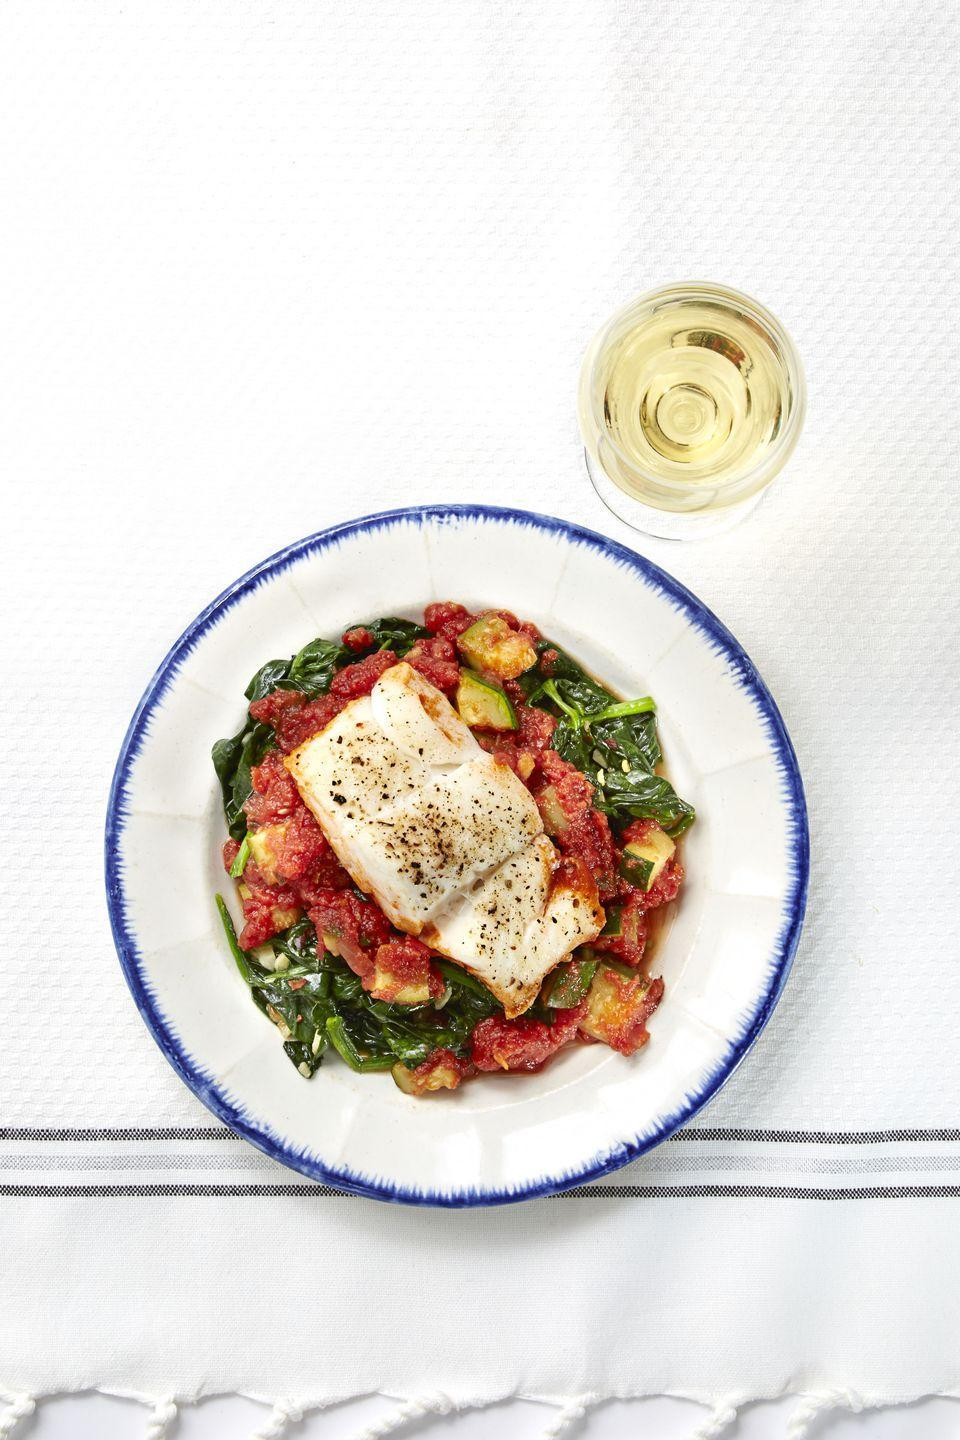 """<p>This month, we're celebrating a delicious <a href=""""https://www.womansday.com/health-fitness/nutrition/a30550619/best-diets-for-women-over-50/"""" rel=""""nofollow noopener"""" target=""""_blank"""" data-ylk=""""slk:way to eat that benefits"""" class=""""link rapid-noclick-resp"""">way to eat that benefits</a> your heart, your brain, and, well, pretty much your whole body: the <a href=""""https://www.goodhousekeeping.com/food-recipes/healthy/g4357/mediterranean-diet-meal-plan/"""" rel=""""nofollow noopener"""" target=""""_blank"""" data-ylk=""""slk:Mediterranean Diet"""" class=""""link rapid-noclick-resp"""">Mediterranean Diet</a>. The eating style emphasizes fruit and veggies, whole grains, healthy fats, and lean and plant-based proteins (particularly fish). Here are the basics:</p><p>•<strong>Make smart pantry swaps. </strong>Switch out white rice and pasta for whole-grain options like quinoa, farro, brown rice, and whole-wheat or bean-based pasta. Use olive oil instead of butter for its healthy fats.</p><p>•<strong>Eat more fish, less meat.</strong> Aim to eat heart-healthy seafood at least twice a week; grilled or baked is better for you than fried. Minimize red meat and focus on lean poultry or pulses like beans and lentils.</p><p>•<strong>Be adventurous with produce.</strong> Since this way of eating emphasizes plant foods, nudge yourself out of your comfort zone and pick up unfamiliar fruits and veggies from the store, then look up recipe ideas.</p><p><strong><em>Start by trying the recipe for <a href=""""https://www.goodhousekeeping.com/food-recipes/a32410/mediterranean-cod-recipe-ghk0515/"""" rel=""""nofollow noopener"""" target=""""_blank"""" data-ylk=""""slk:Mediterranean Cod"""" class=""""link rapid-noclick-resp"""">Mediterranean Cod</a>.</em></strong><br></p>"""